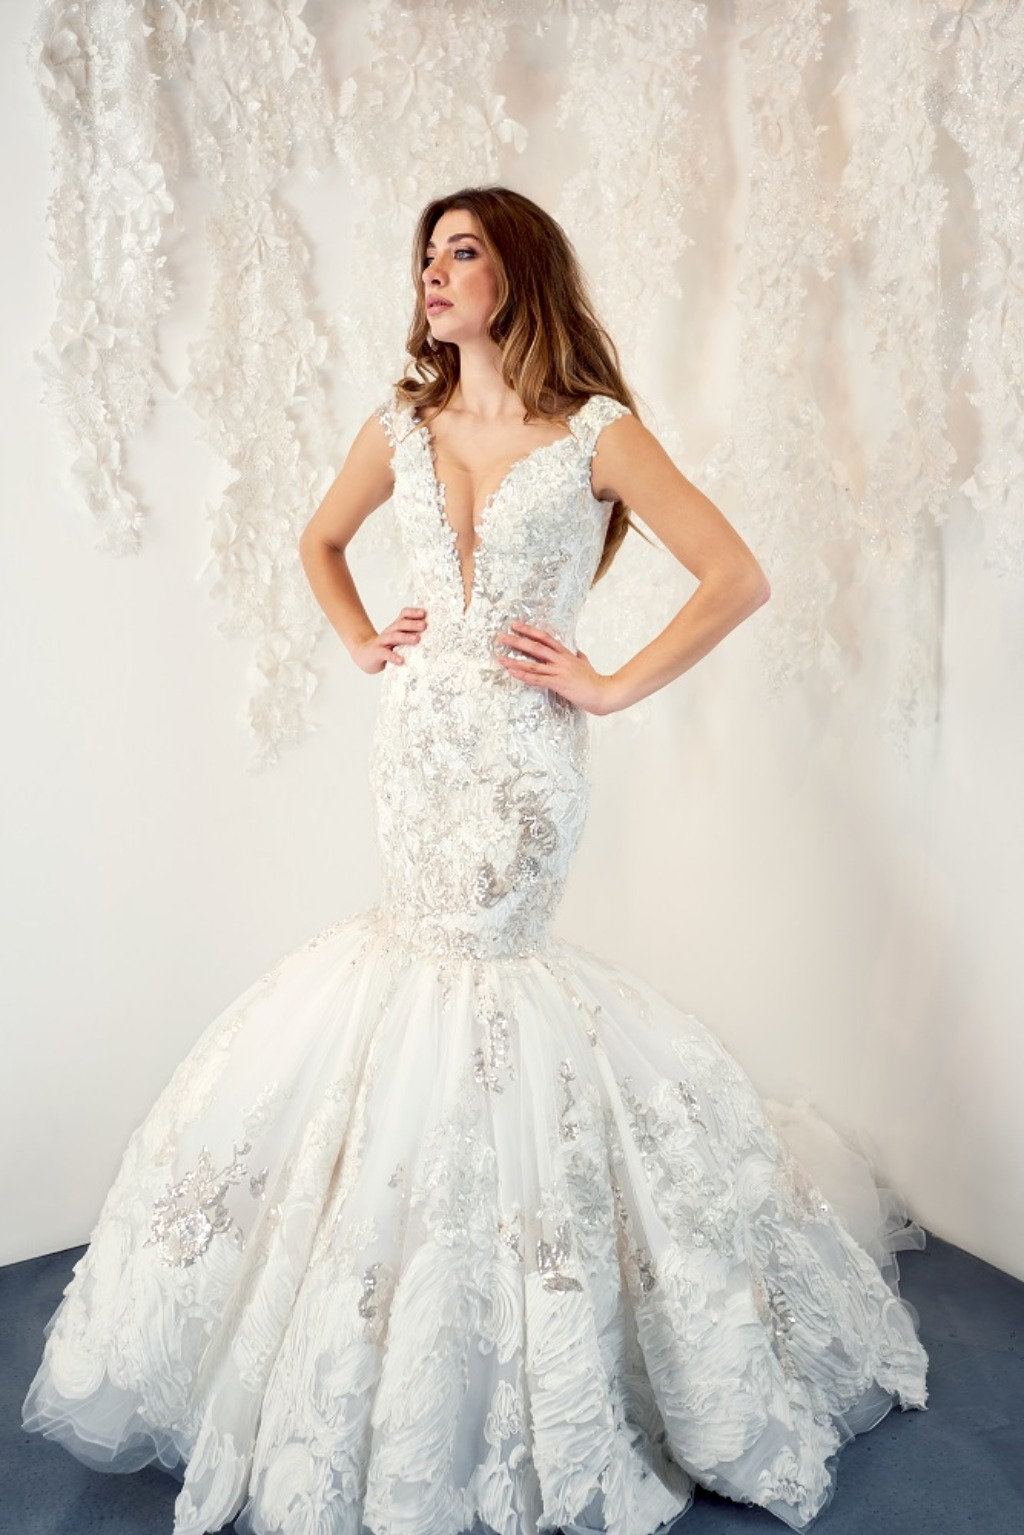 Ysa Makino Bridal and Evening Wear Trunk Show